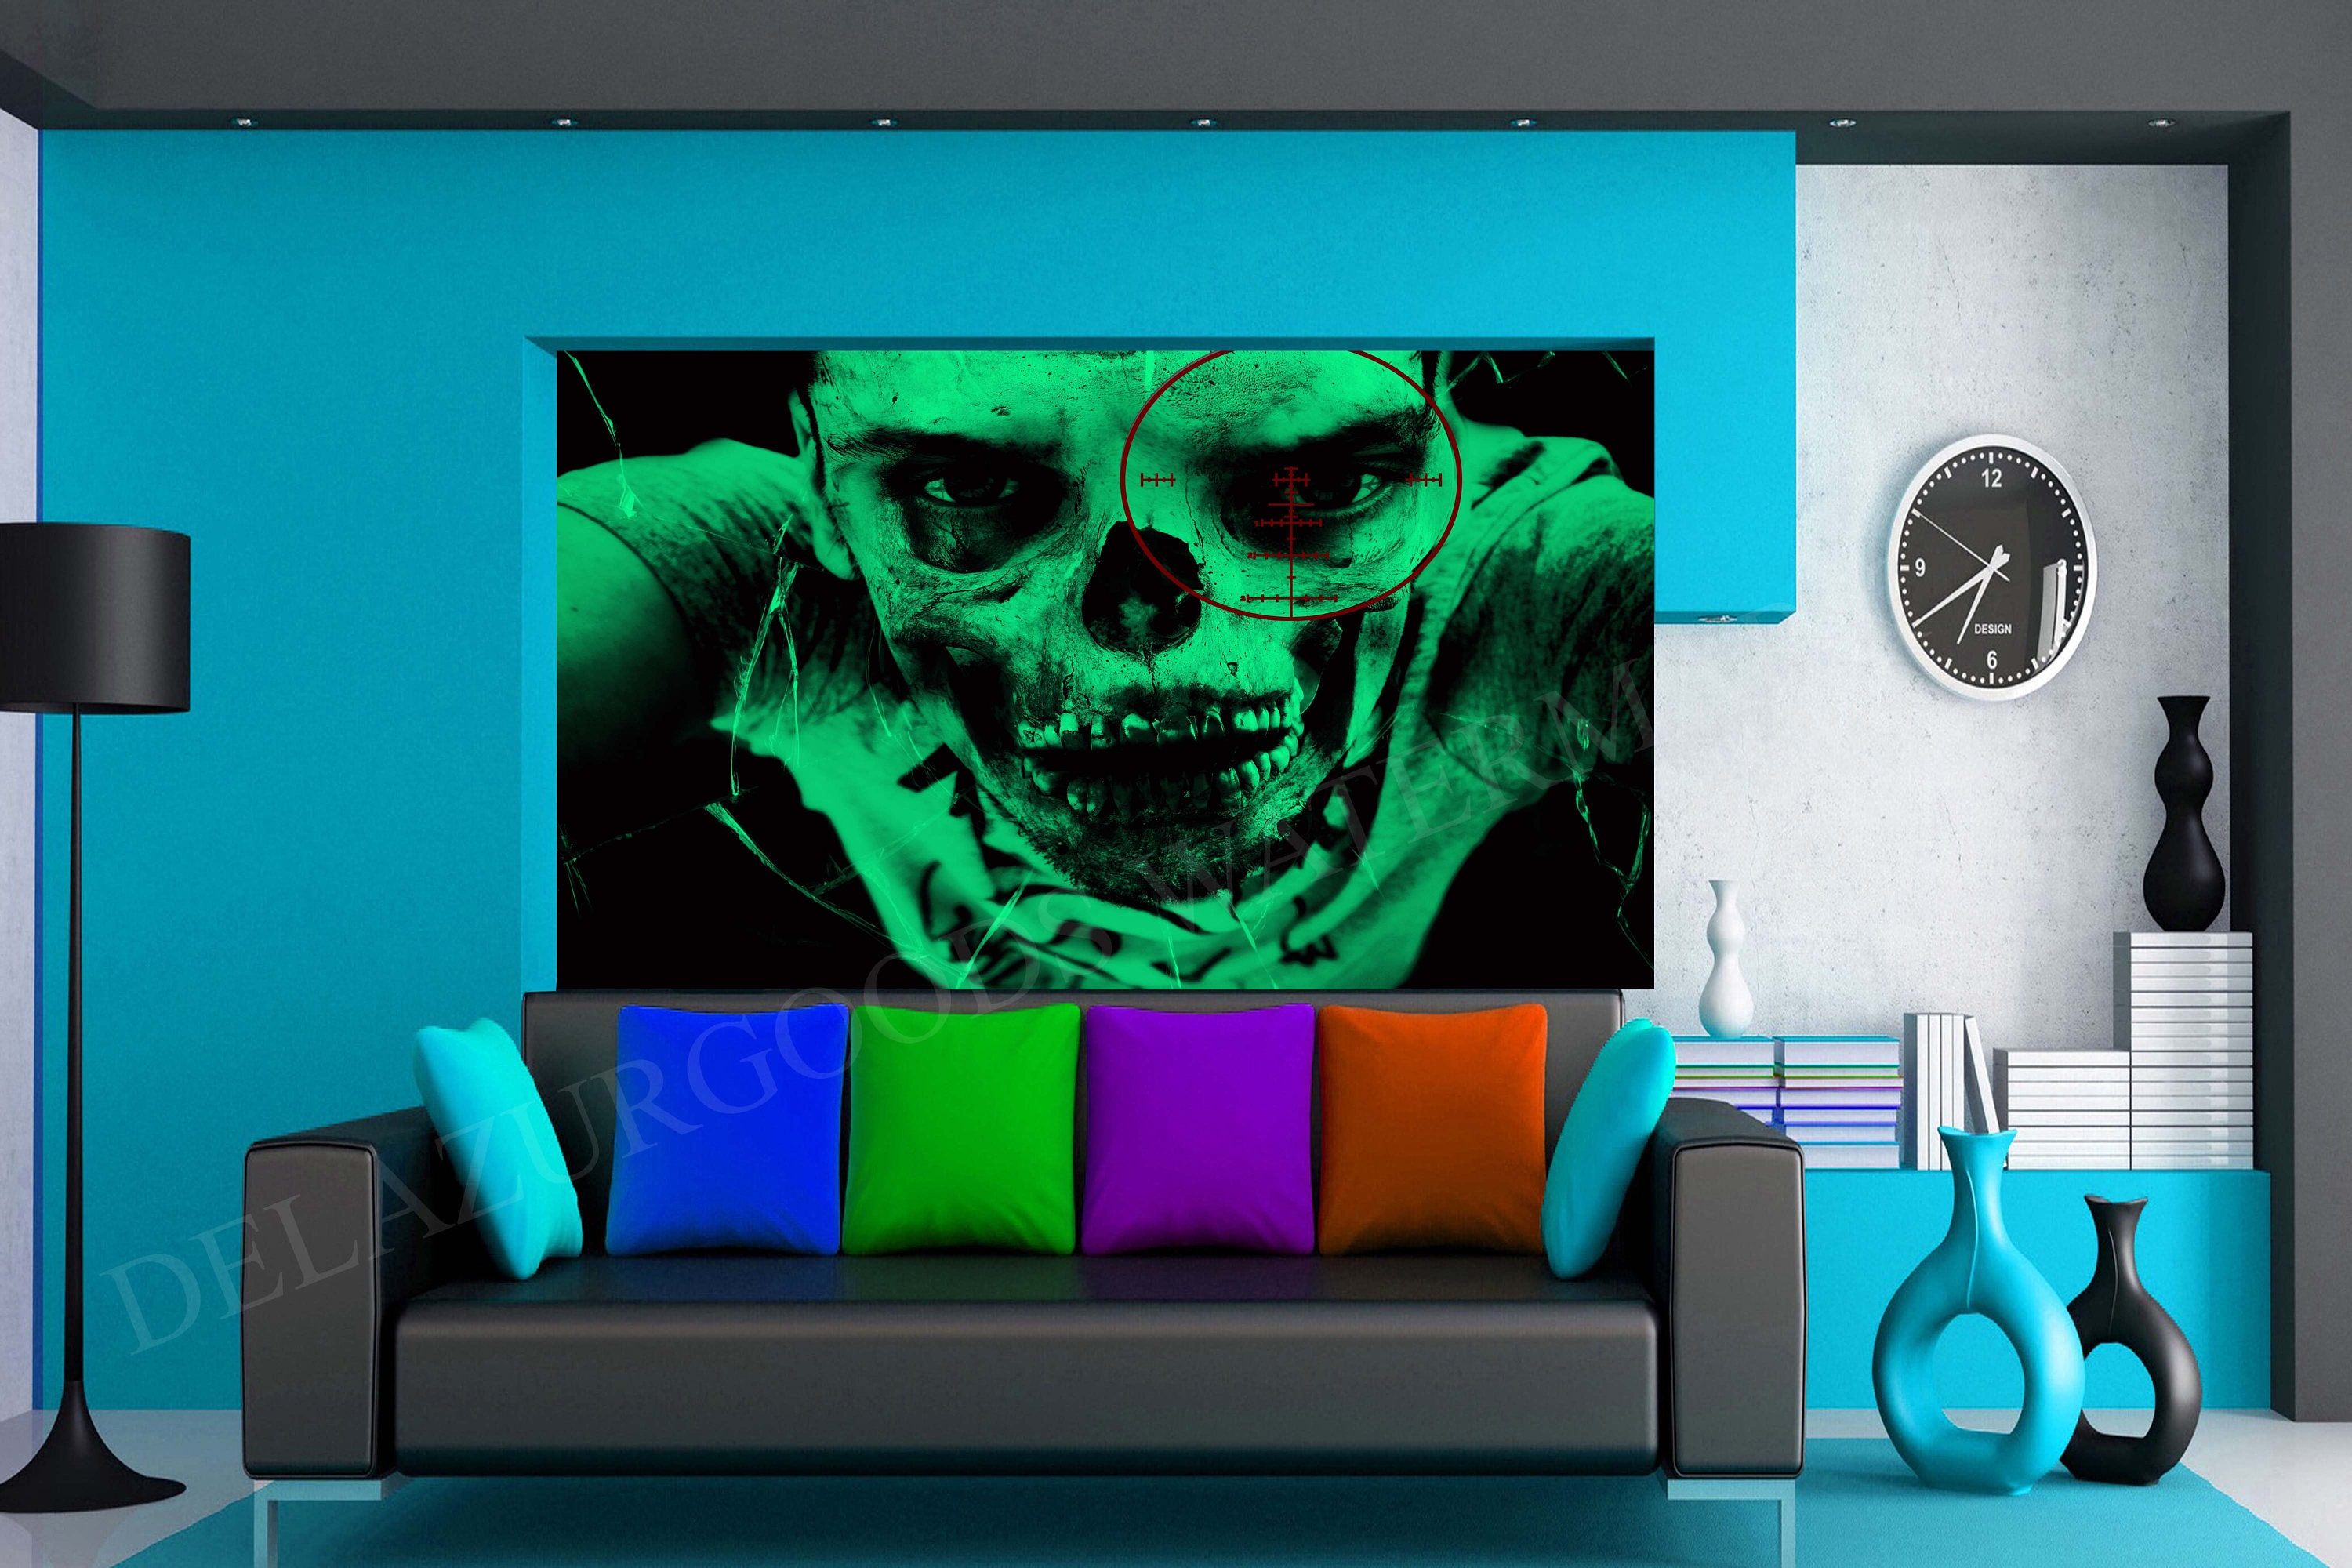 Radioactive Zombie Wallpaper Radioactive zom...